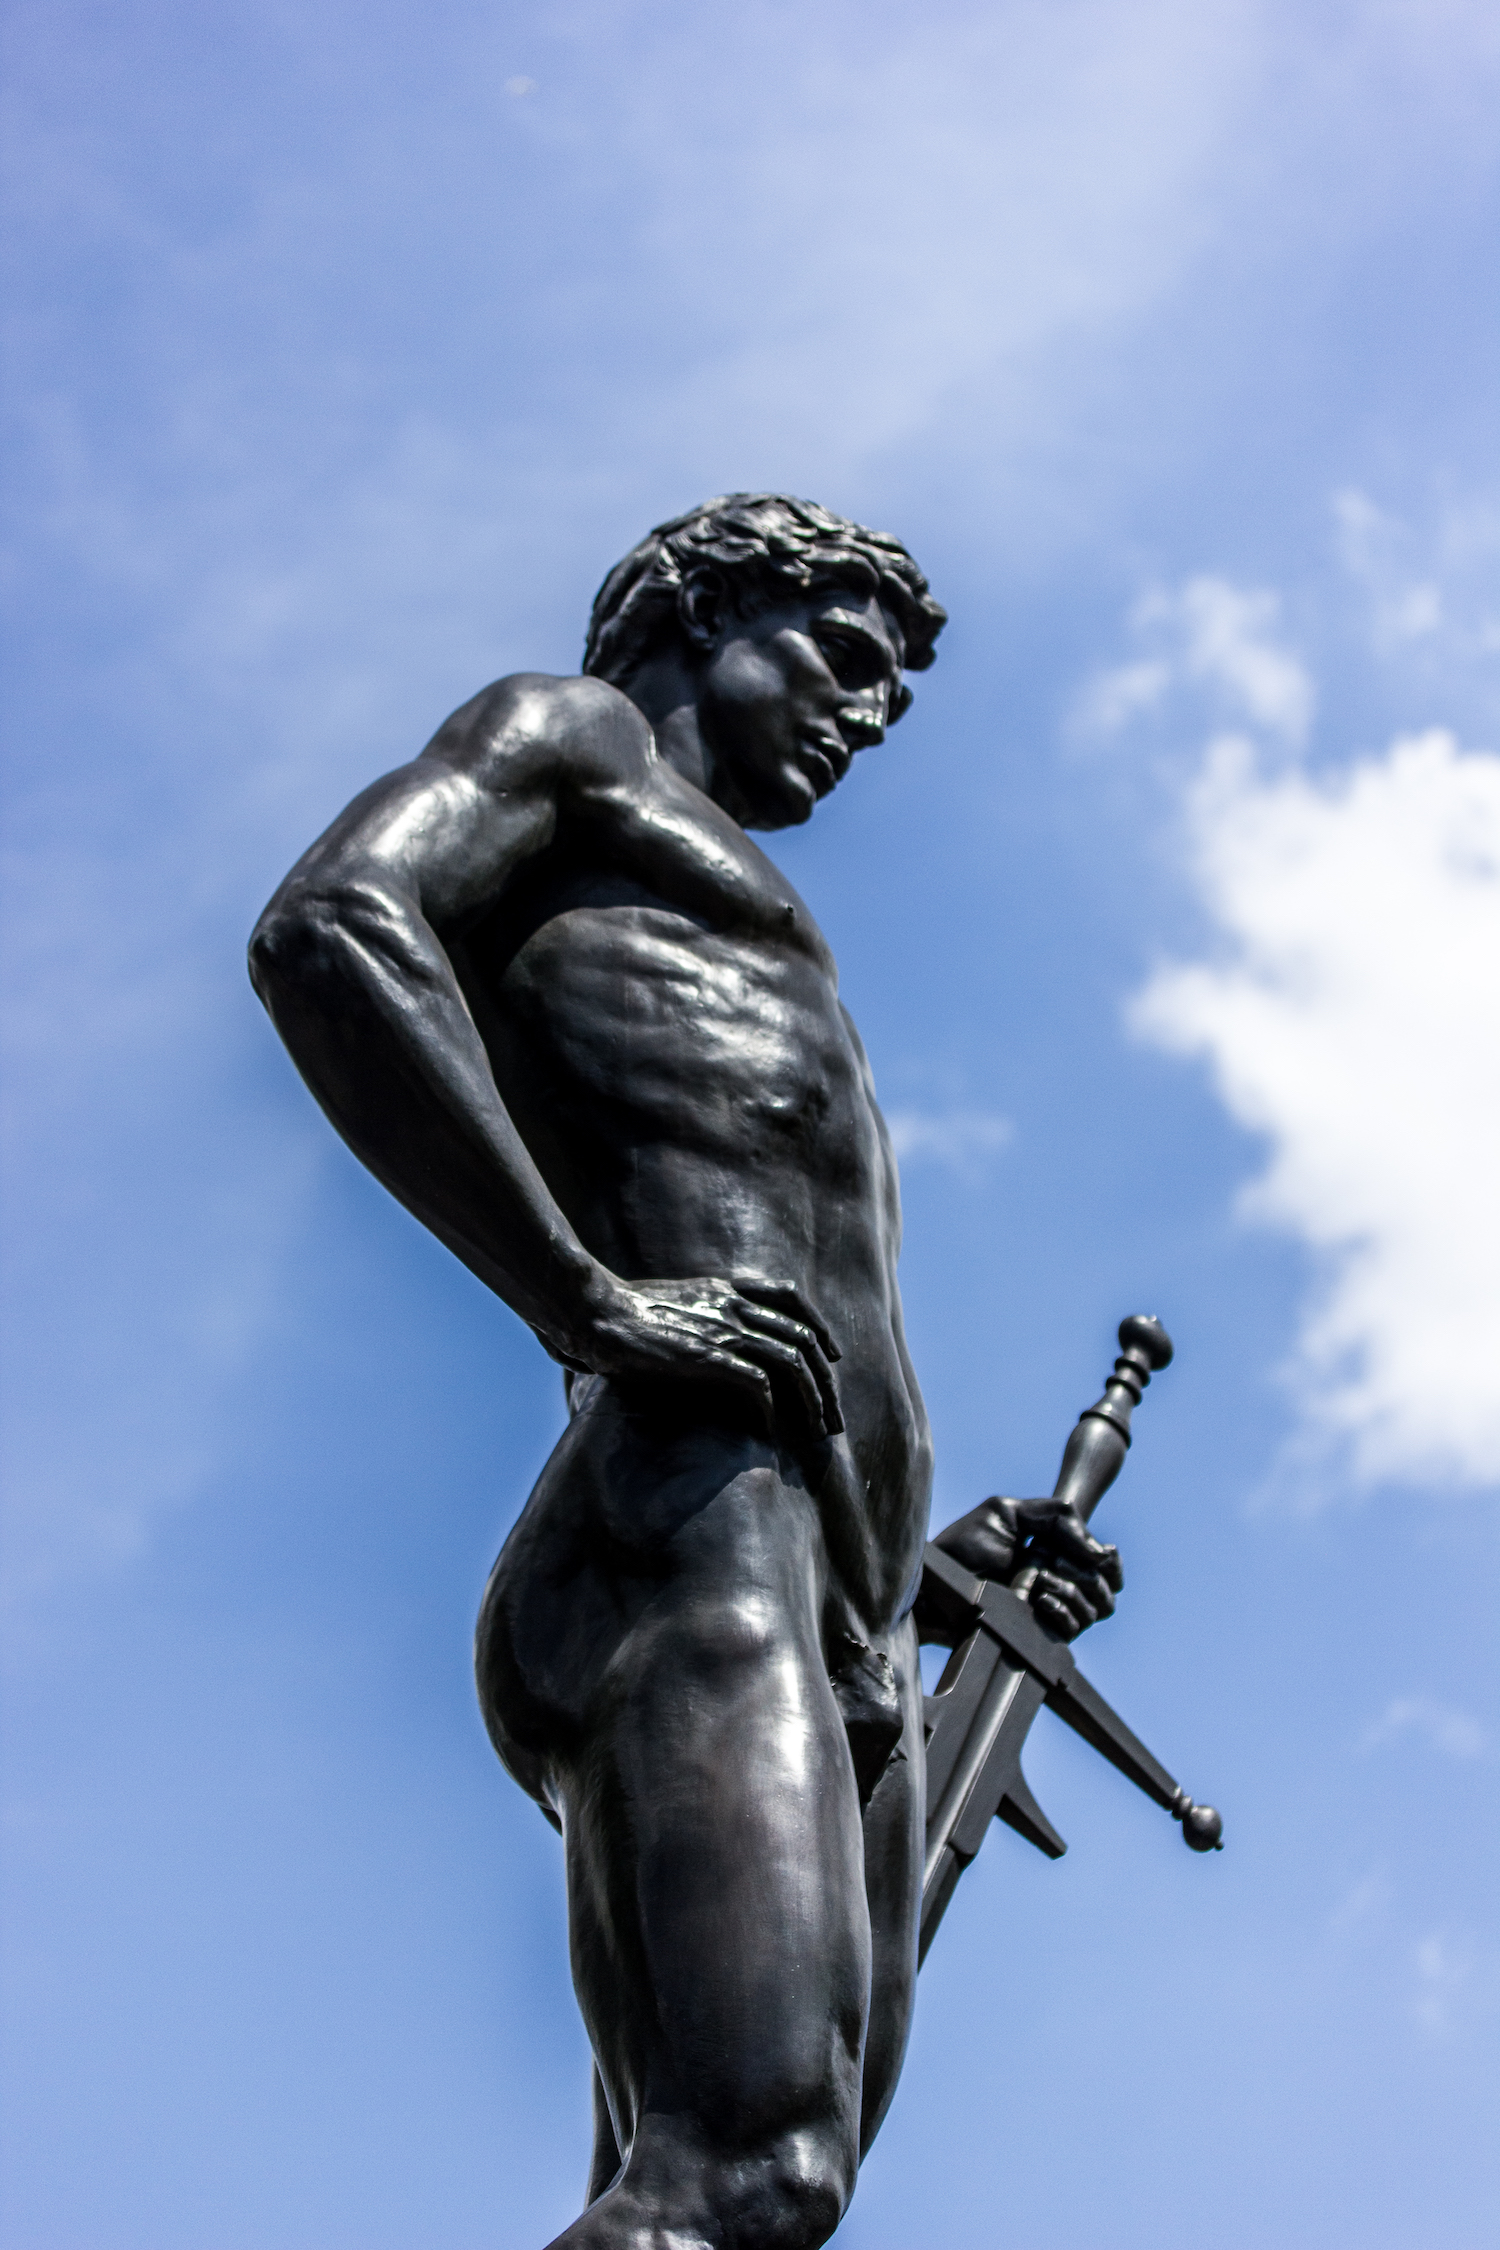 Professional Photography Black Statue Of Man With Sword And Hand On Hip Blue Sky And Clouds In Hyde Park London